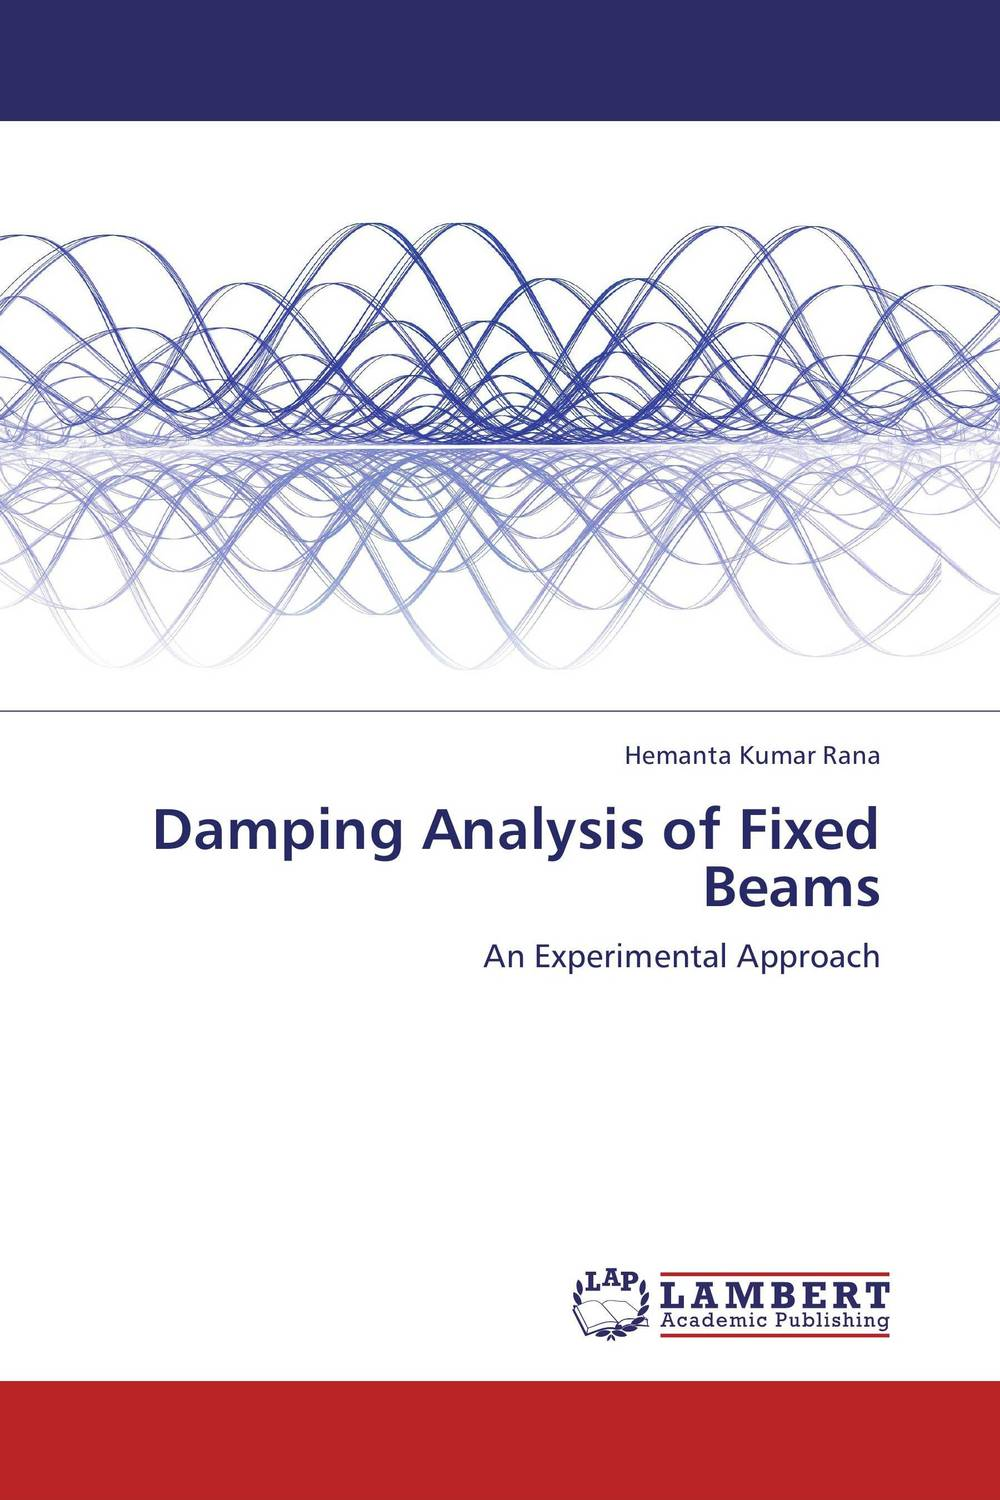 Damping Analysis of Fixed Beams belousov a security features of banknotes and other documents methods of authentication manual денежные билеты бланки ценных бумаг и документов